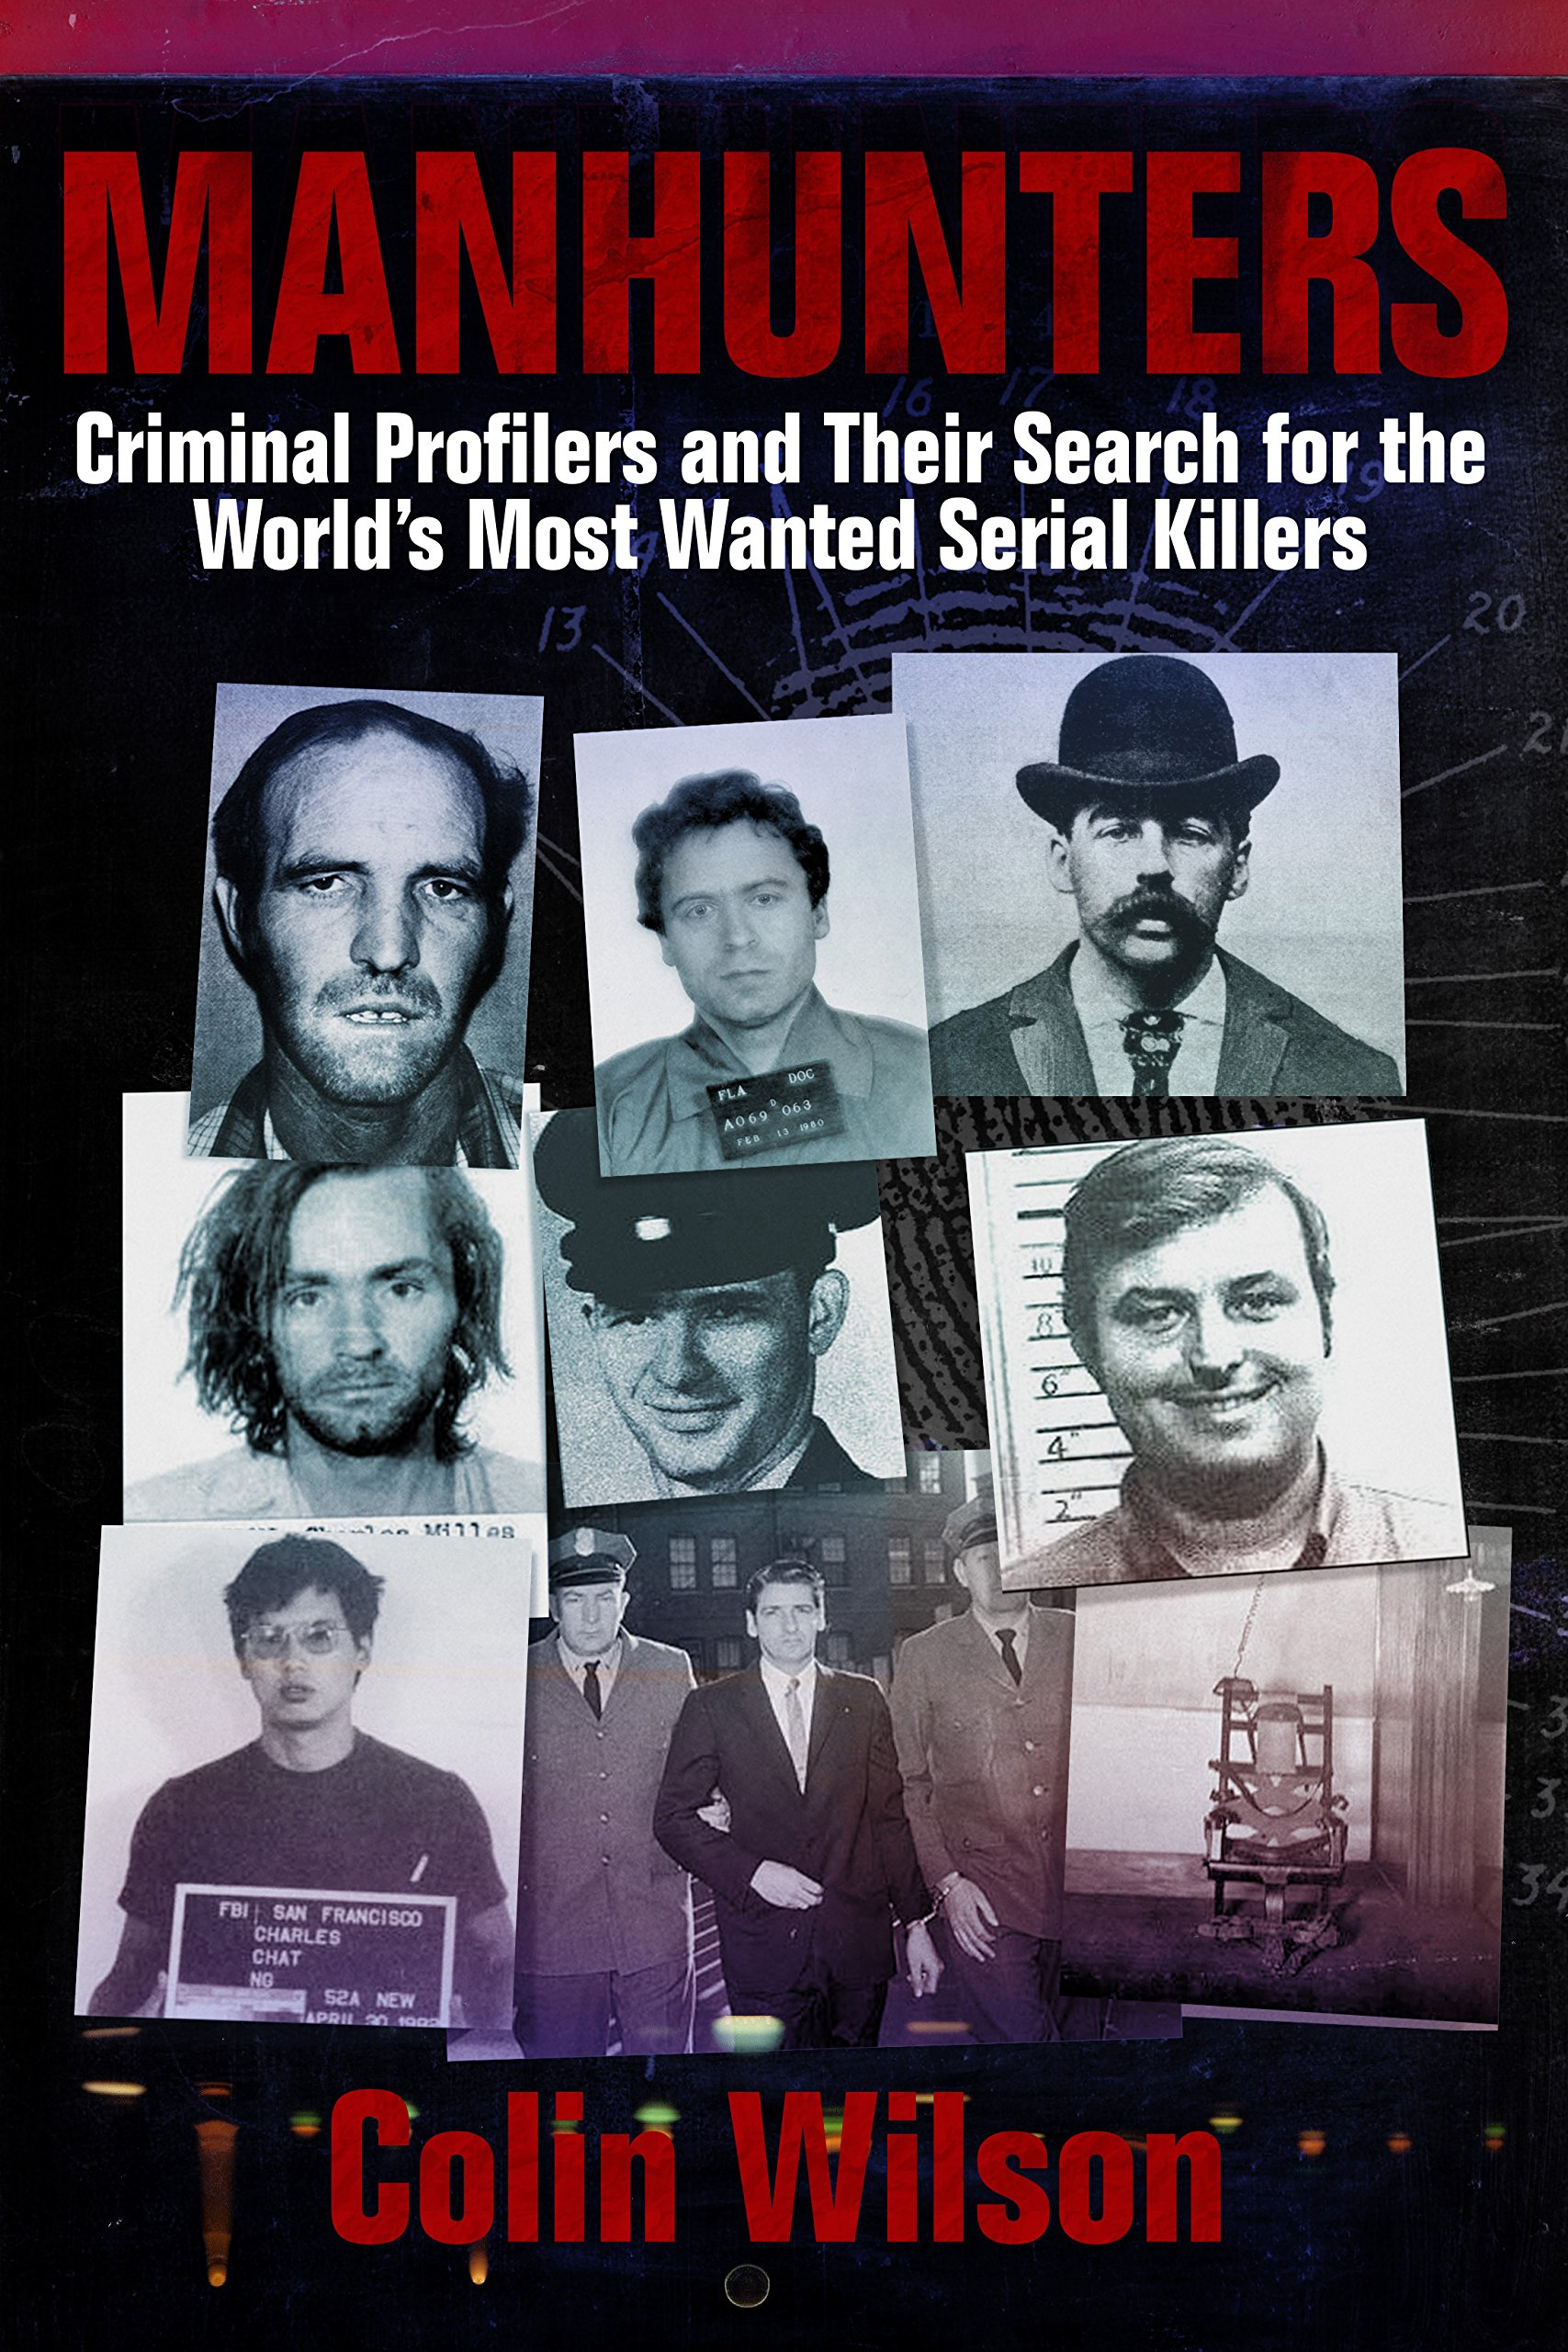 Manhunters: Criminal Profilers and Their Search for the World's Most Wanted Serial Killers